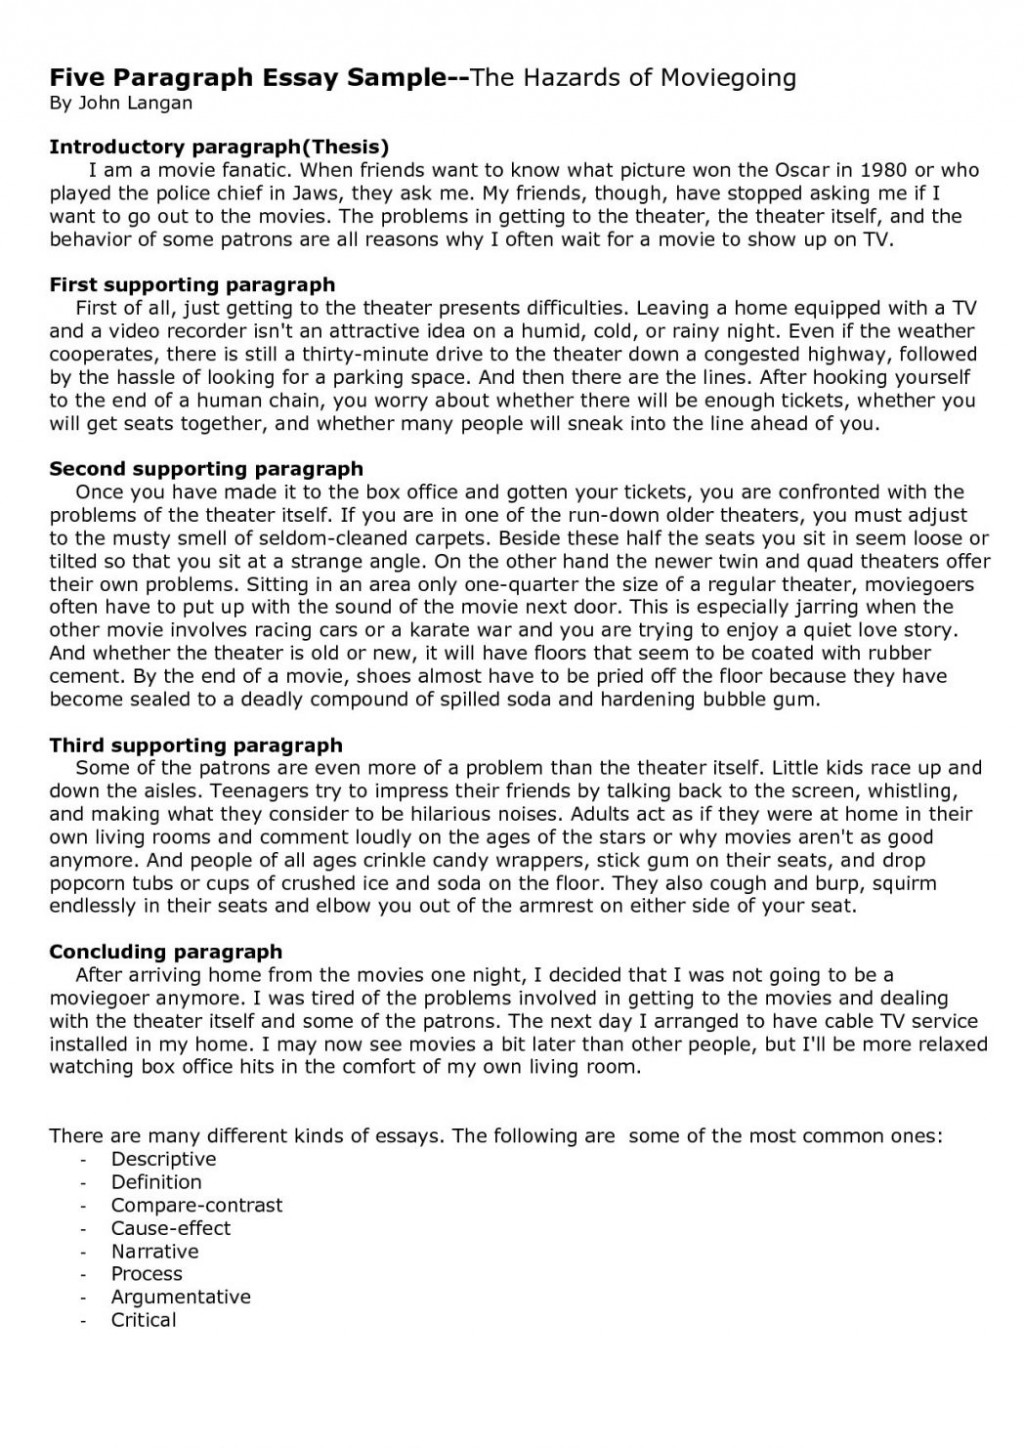 006 Paragraph Narrative Essay Examples Printables Corner Example World Of Printablend Chart Intended Fo Personal 1048x1482 How Many Paragraphs Is Incredible A College Argumentative Thematic Large